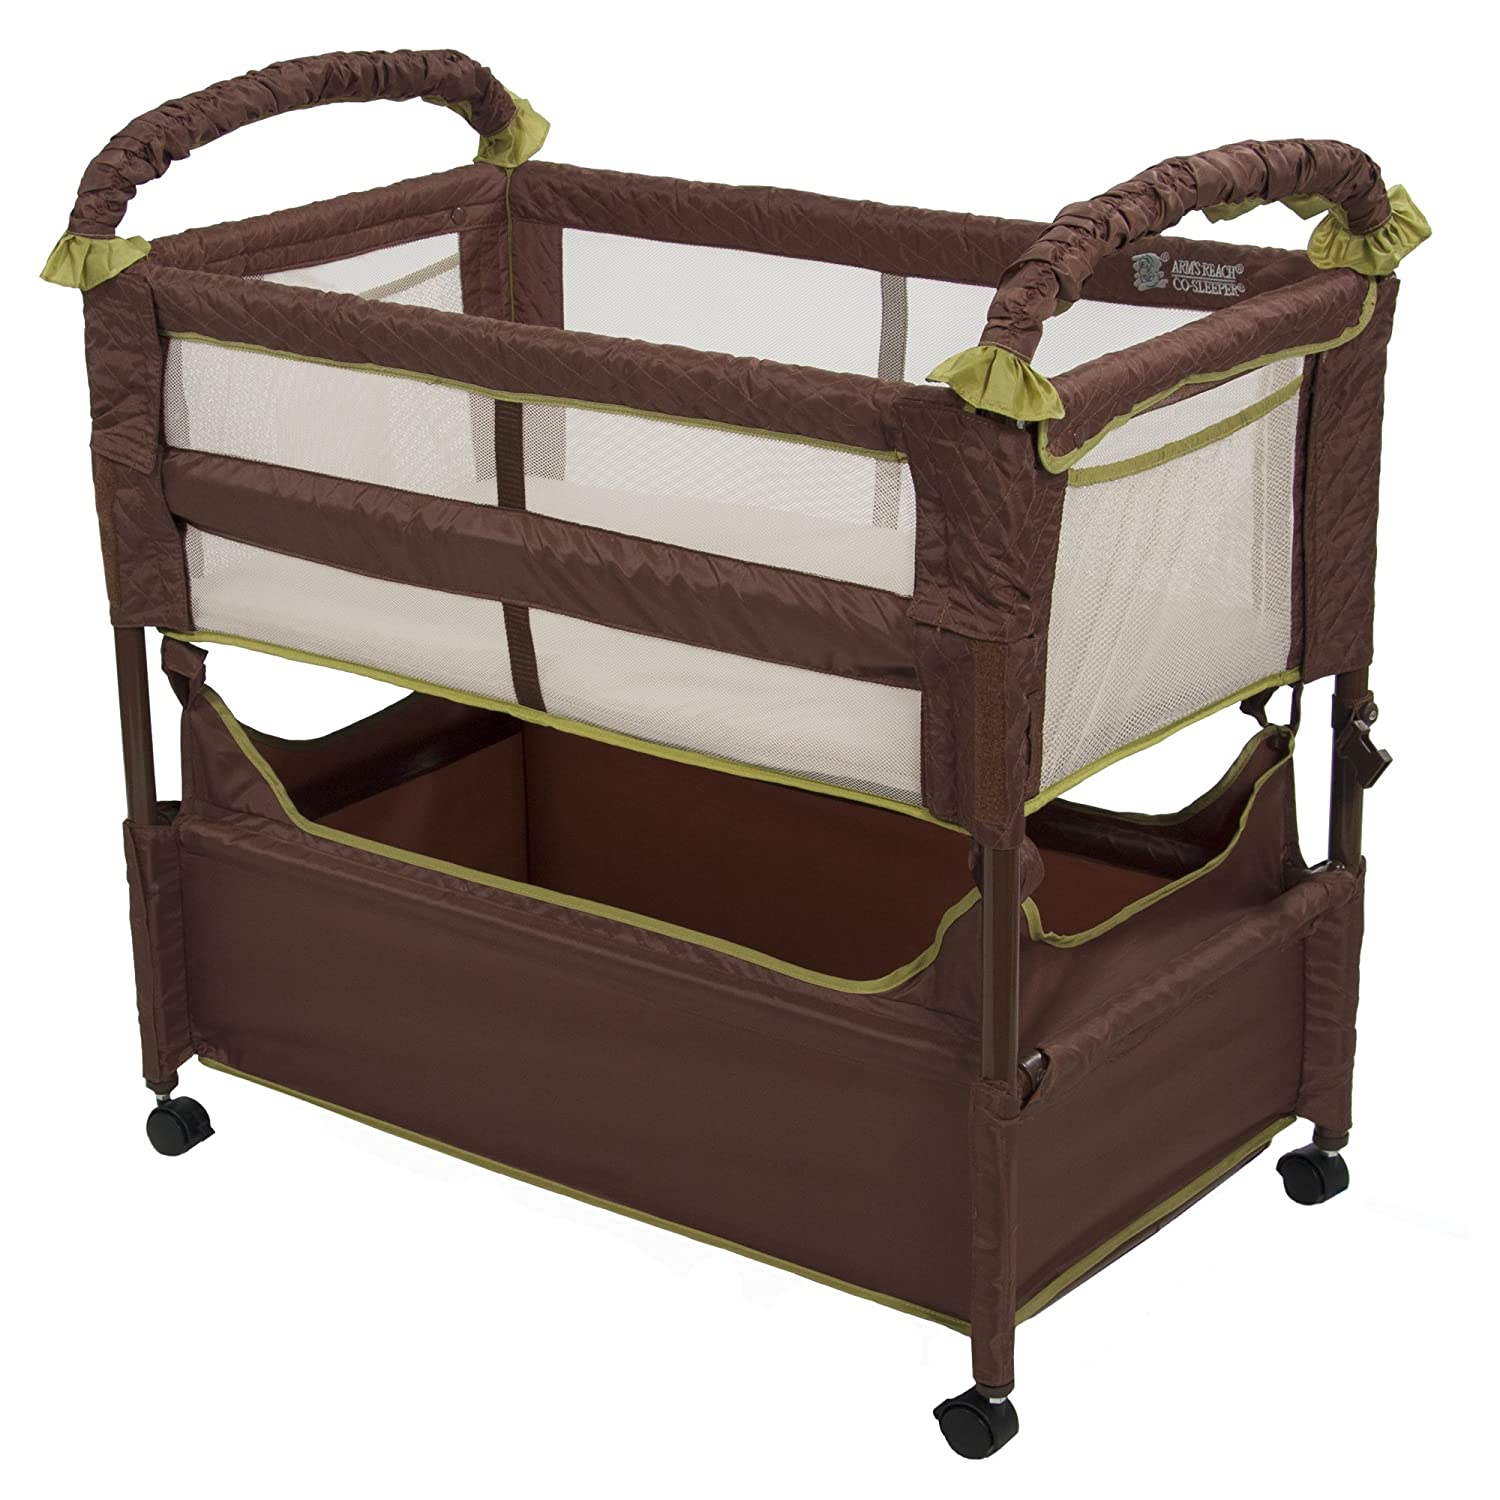 Co Sleeper Crib Arms Reach Co Sleeper Baby Bed Bassinet ...